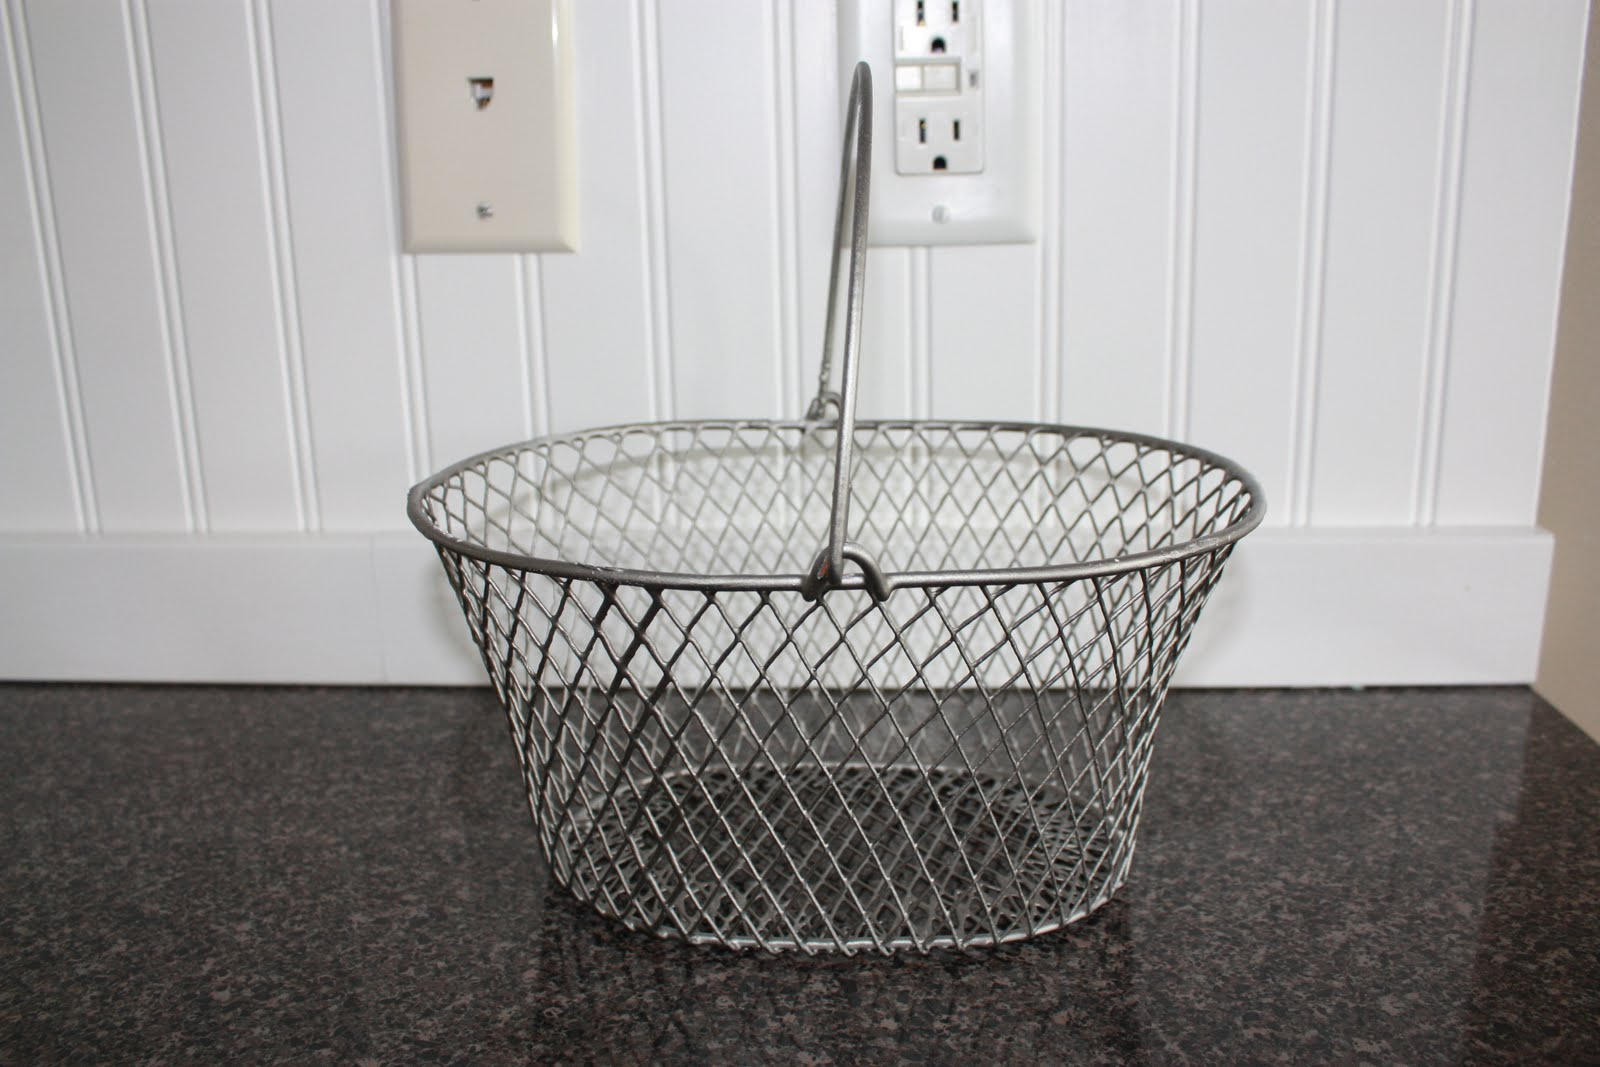 COUNTRY GIRL HOME : Dollar store wire basket redo